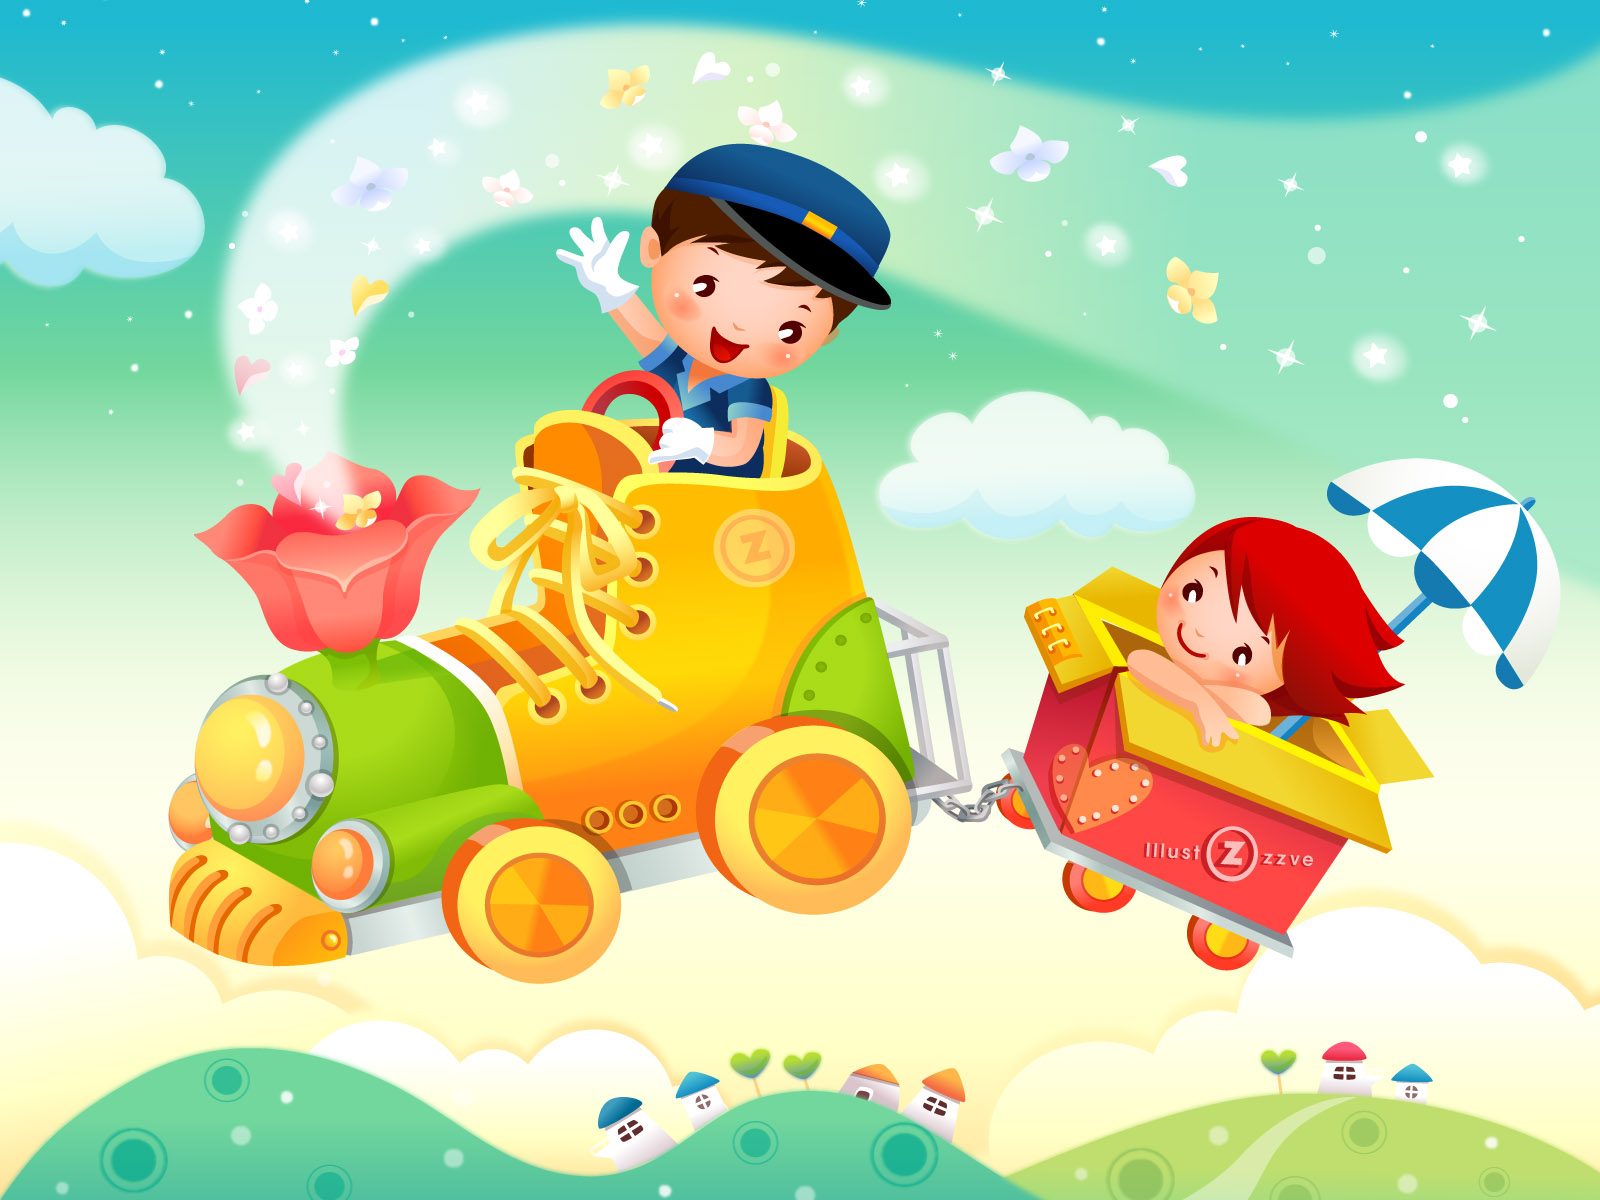 Cartoon for children 1600 x 1200 download close